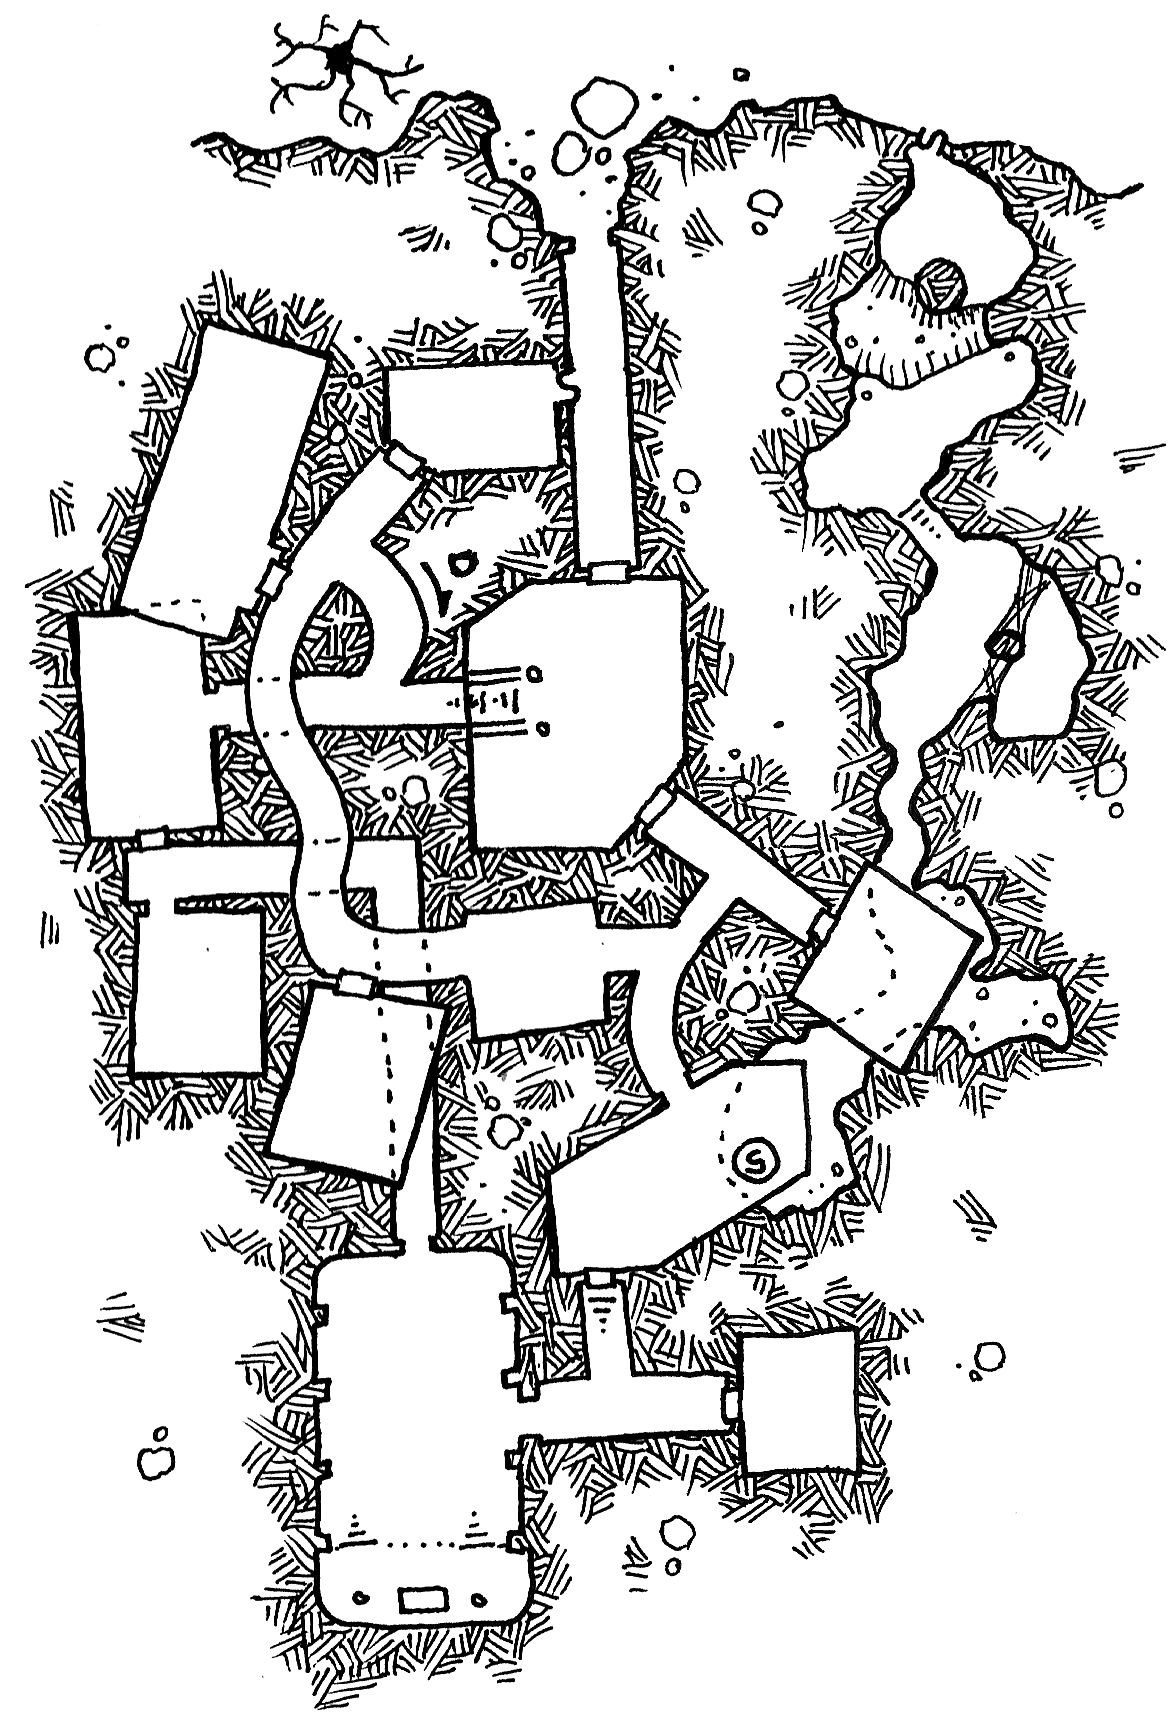 Friday Map] Heber's Cave | RPG Maps | Dungeon maps, Fantasy city map